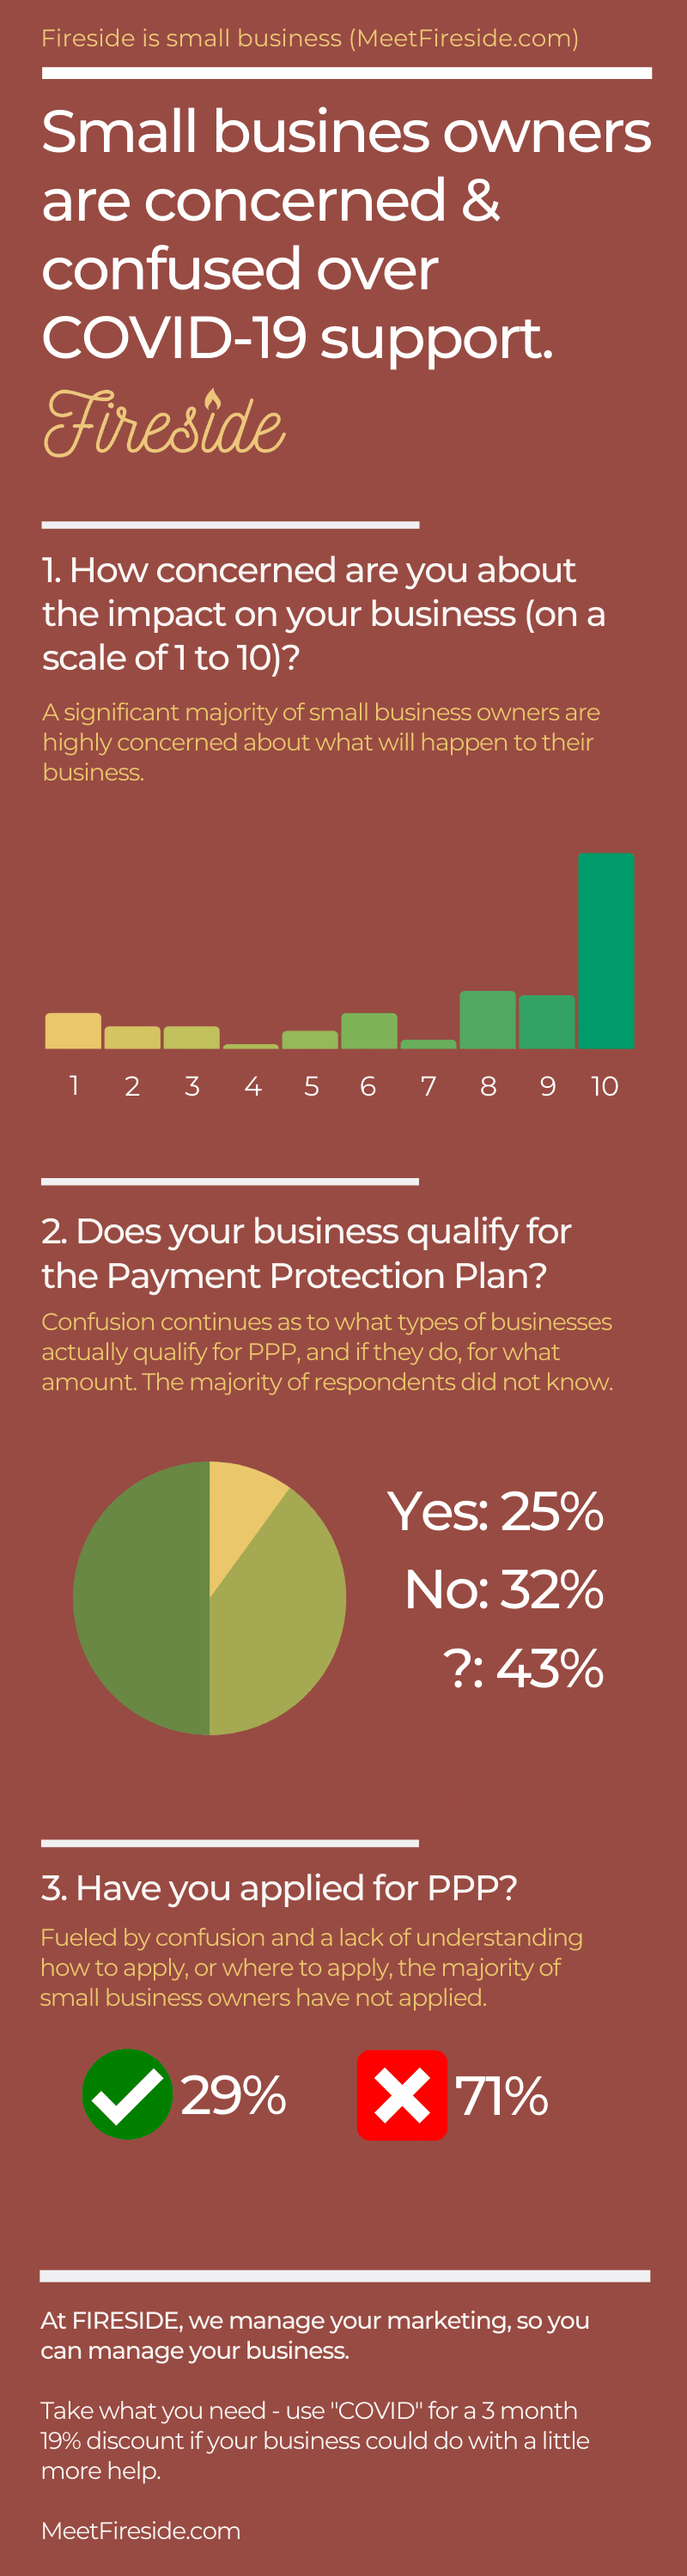 Small Business Owners Are Concerned and Confused over COVID-19 Support #infographic